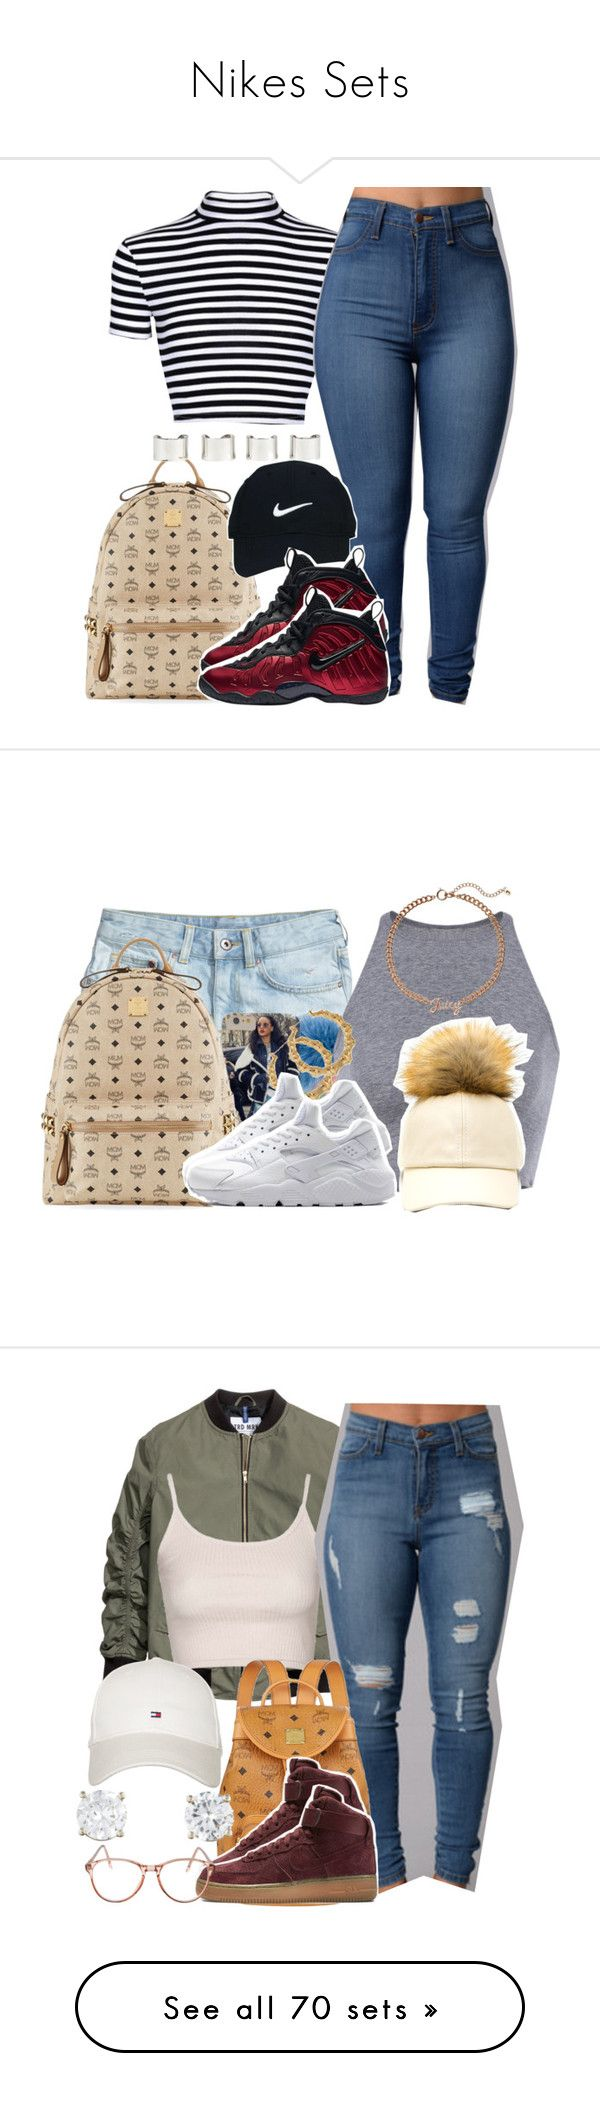 """Nikes Sets"" by luhariiee ❤ liked on Polyvore featuring MCM, Nike Golf, NIKE, Maison Margiela, AriIdeas, H&M, Fendi, Juicy Couture, Topshop and Tommy Hilfiger"